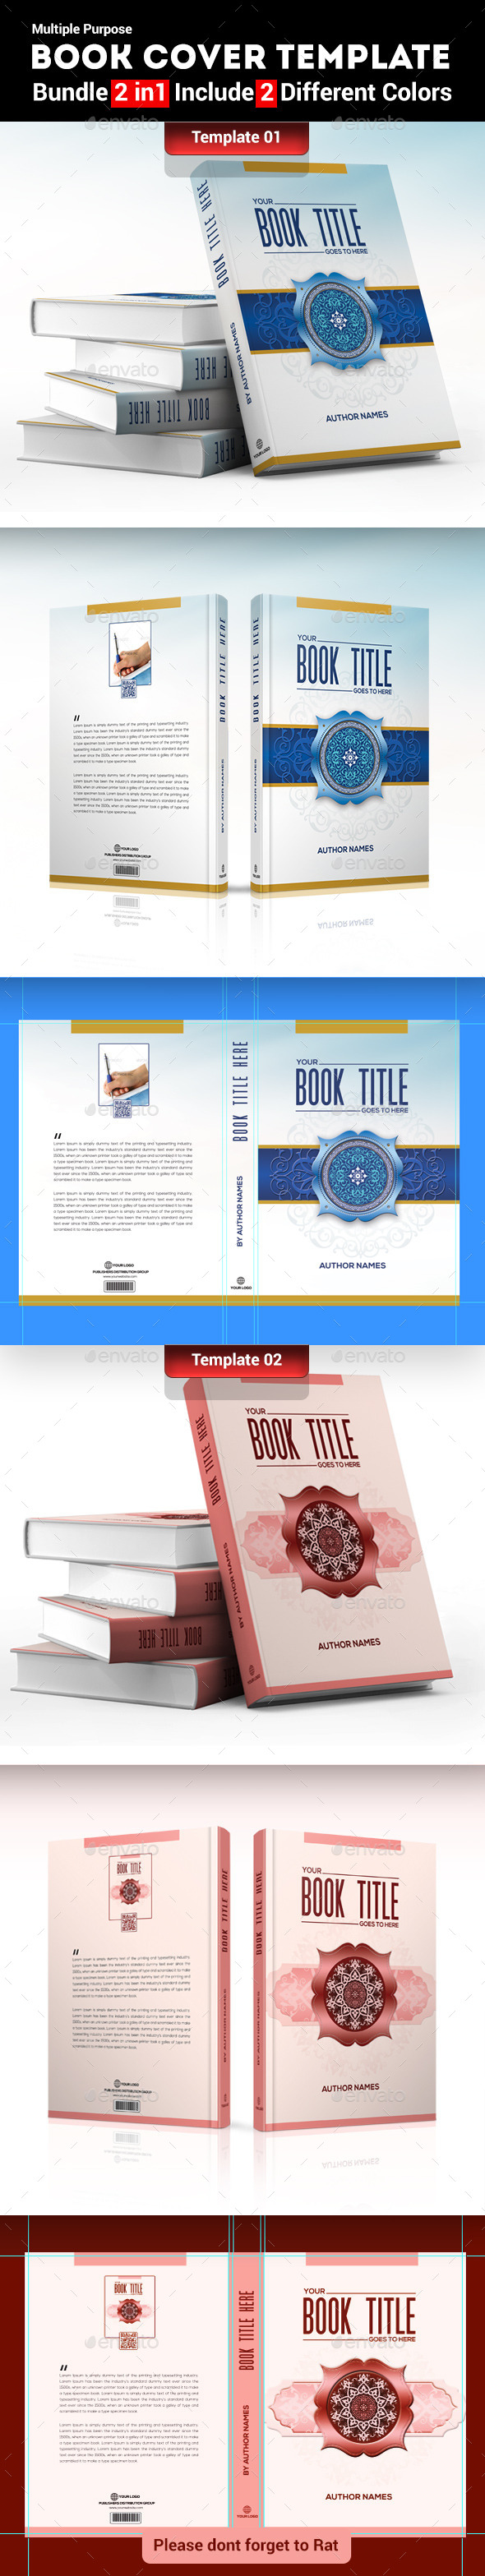 GraphicRiver Book Cover Template Bundle 2 in 1 9640329